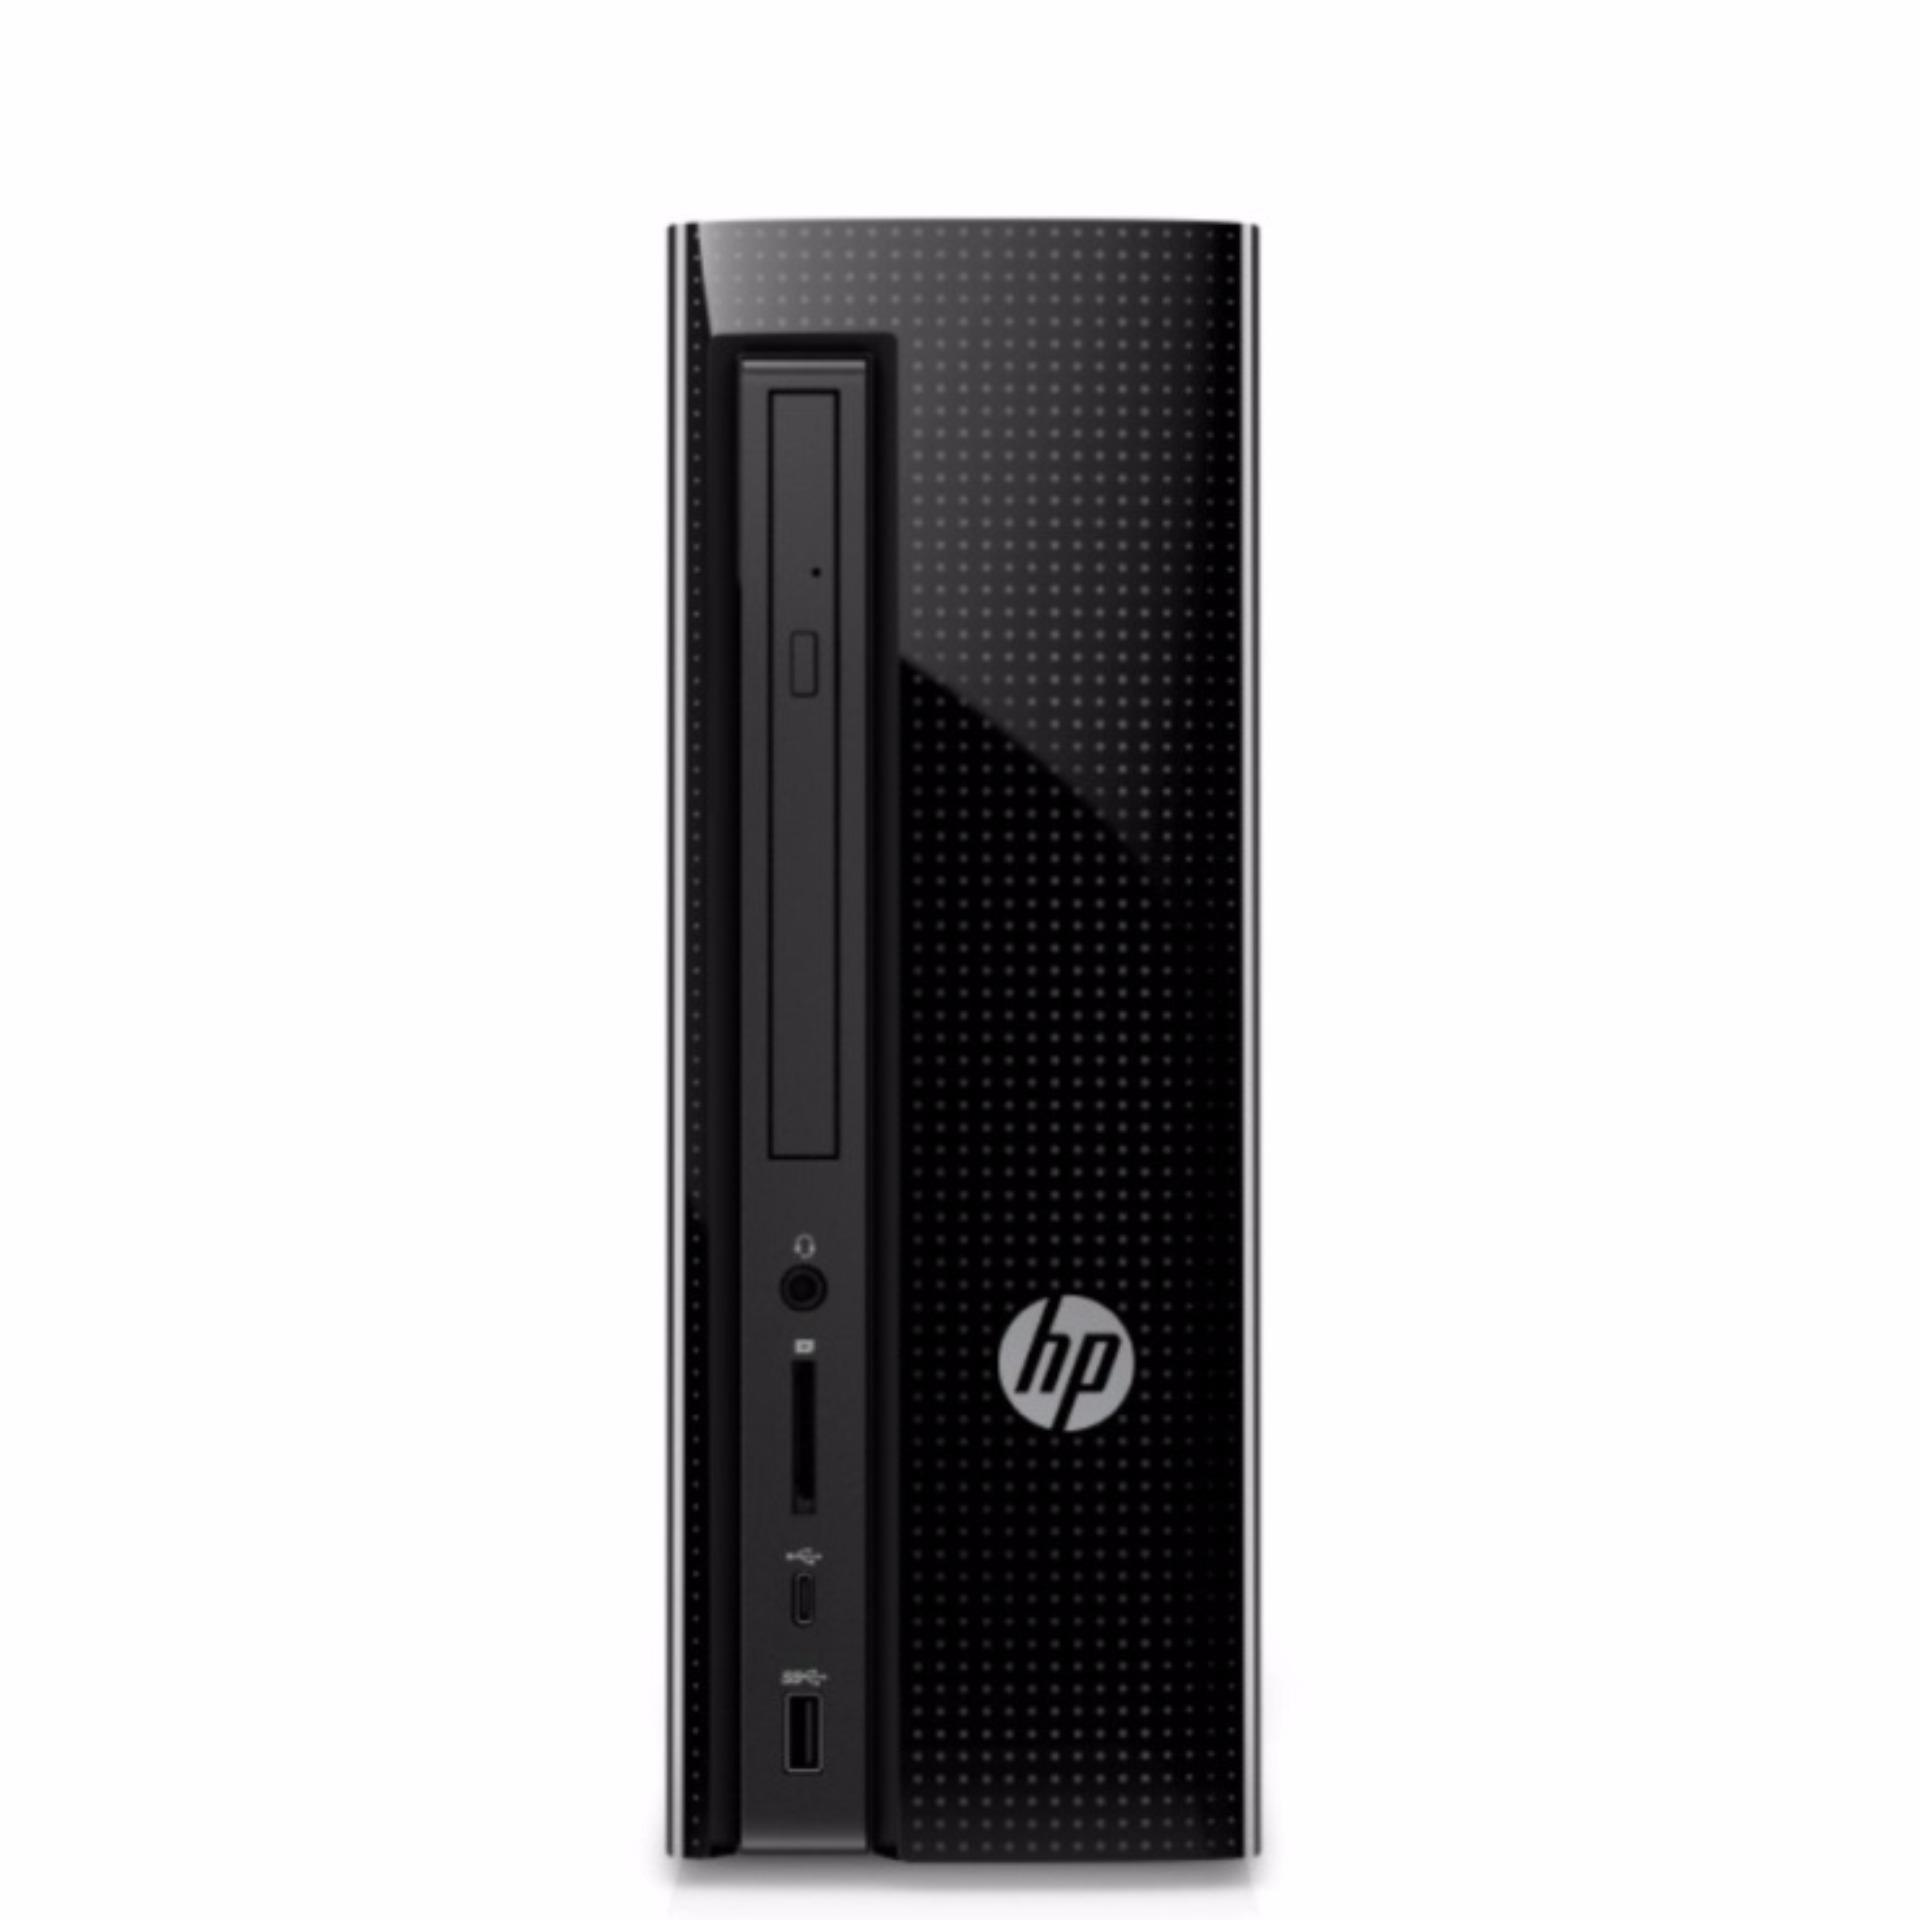 HP Slimline 270-p023d Intel® Core™ i7-7700T Processor (2.9 GHz, up to 3.8 GHz, 8 MB cache, 4 cores Windows 10 Home 8 GB DDR4-2400 SDRAM memory (1 x 8 GB) 128GB PCIe NVMe TLC SSD + 1TB 7200RPM 3.5 HDD